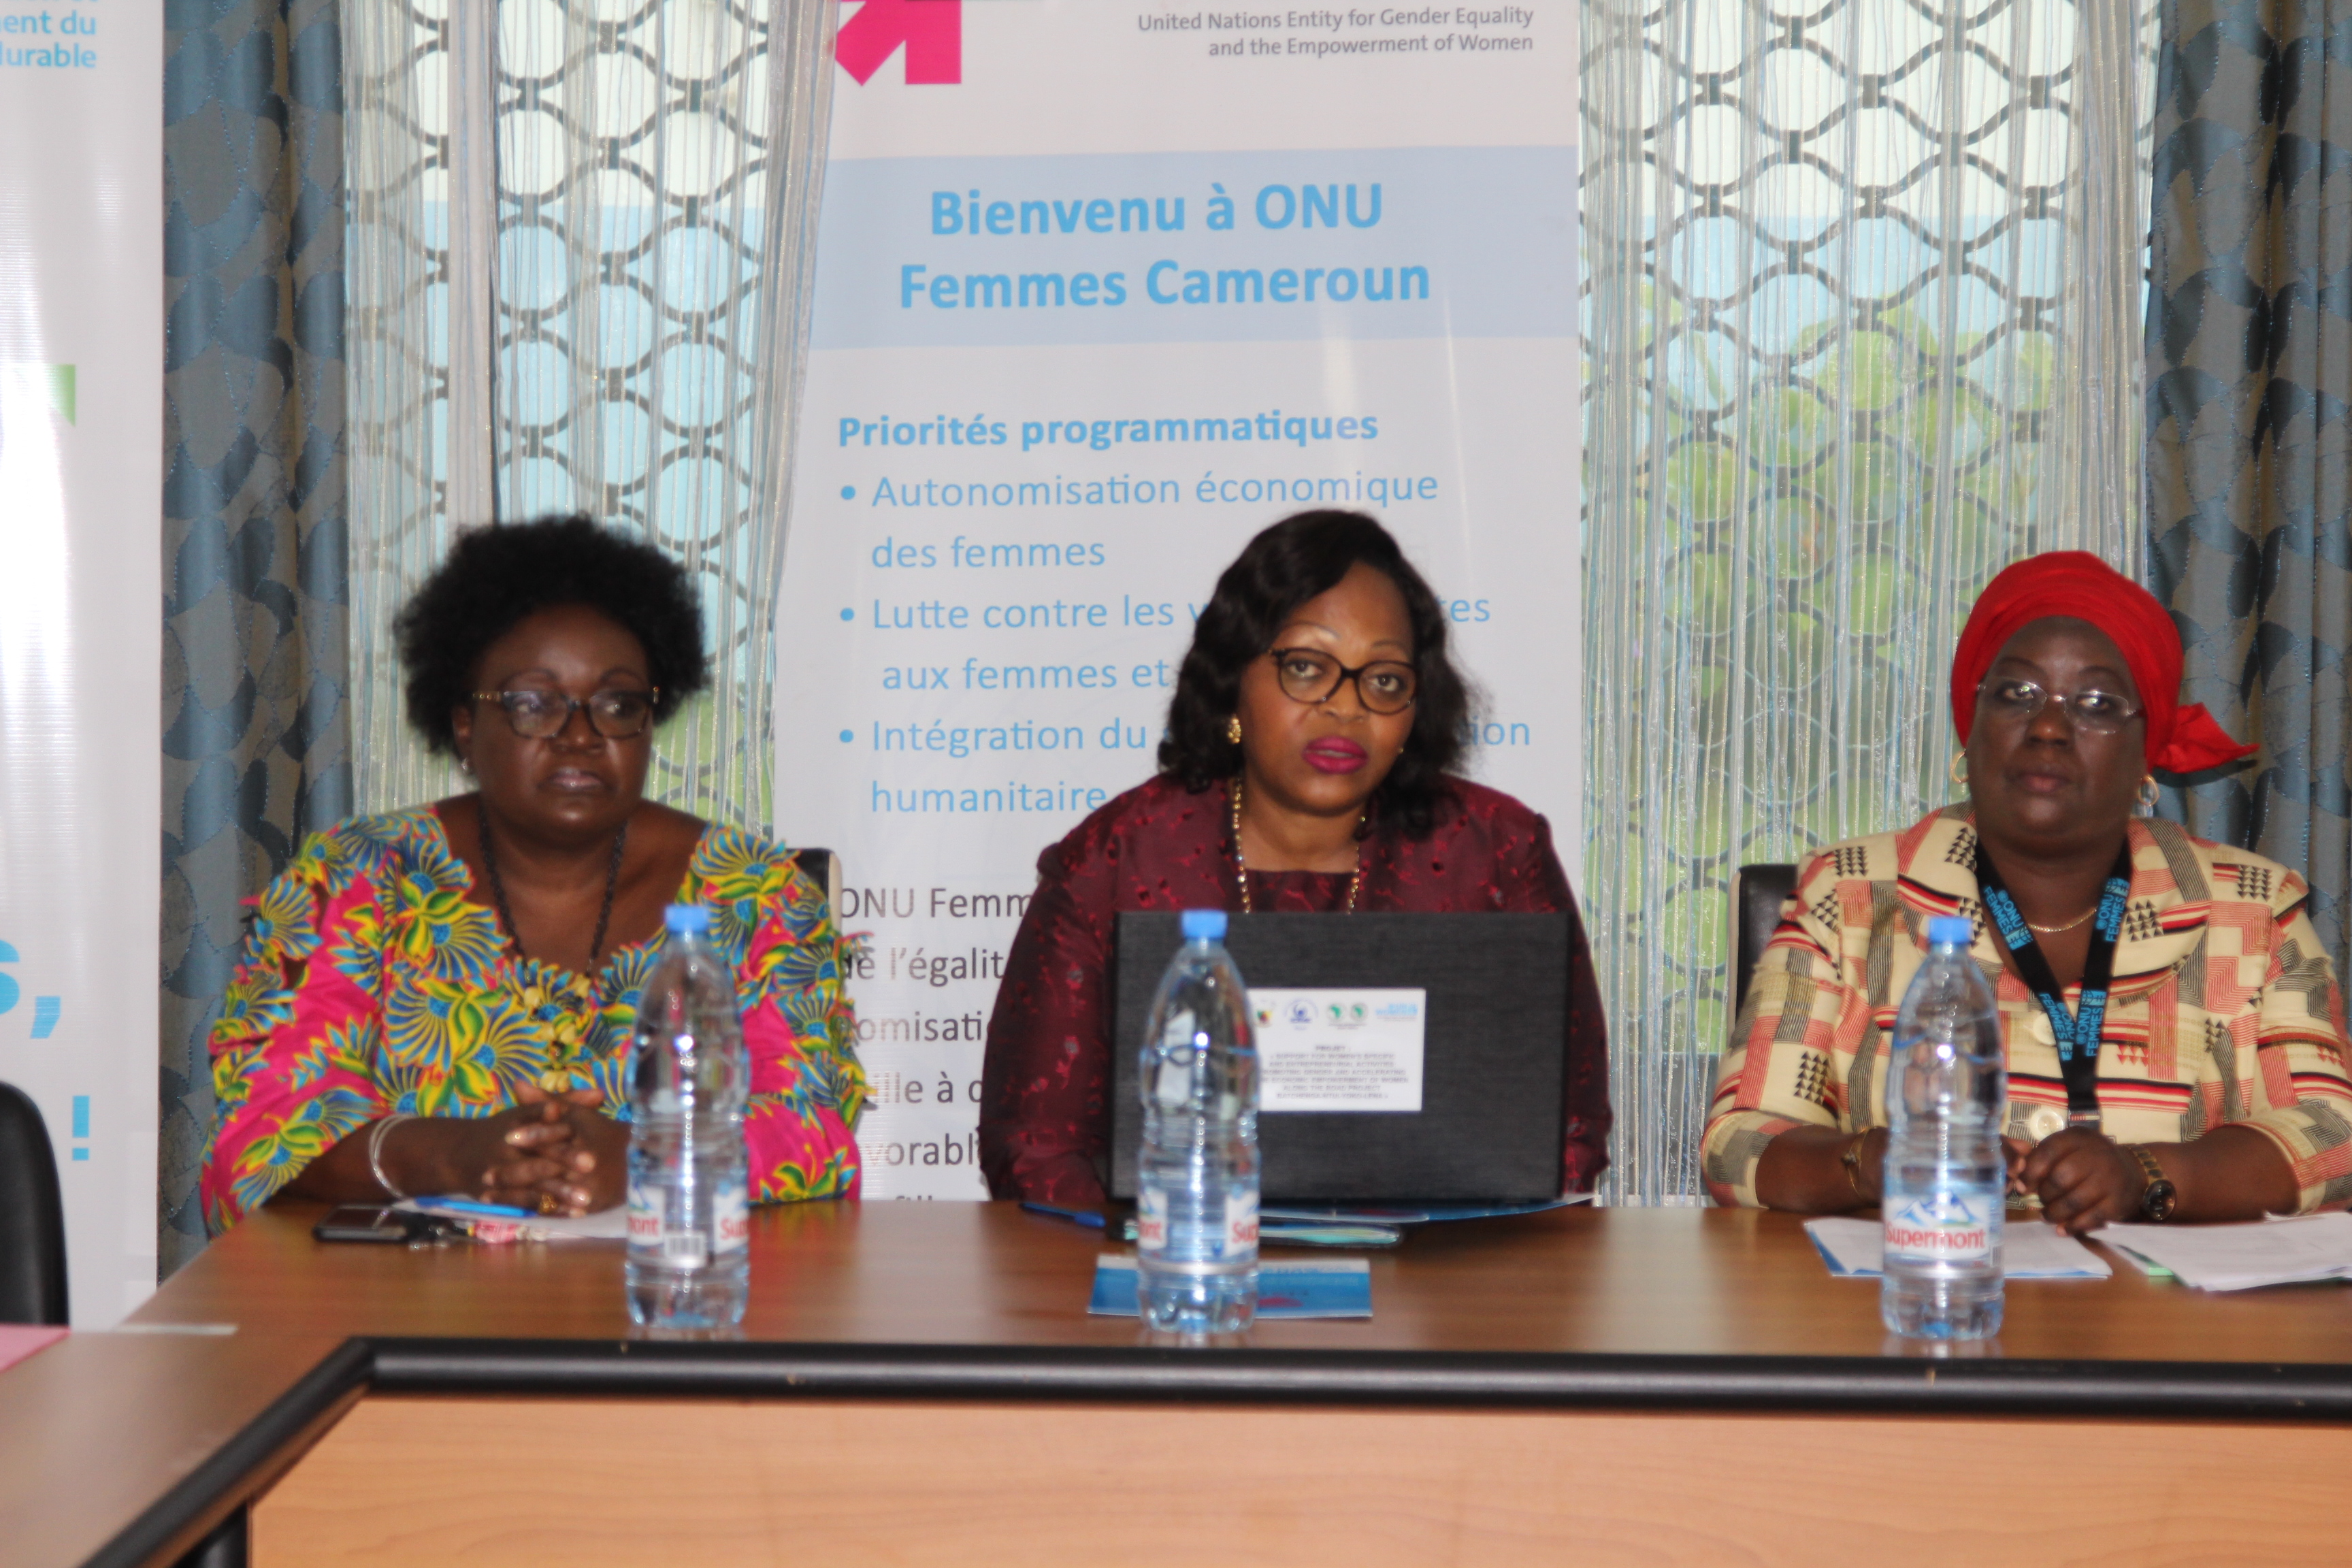 Mme Ongola Martine, Director of Economic Empowerment of Women (centre) flanged by Mme Paulette Beat, Governance Programme Coordinator, UN Women Cameroon (left) and Mme Djenaba Ndiaye, Programme Coordinator Gender Hygiene and Sanitation, UN Women WCARO (right). Photo credit; Teclaire Same, UN women.